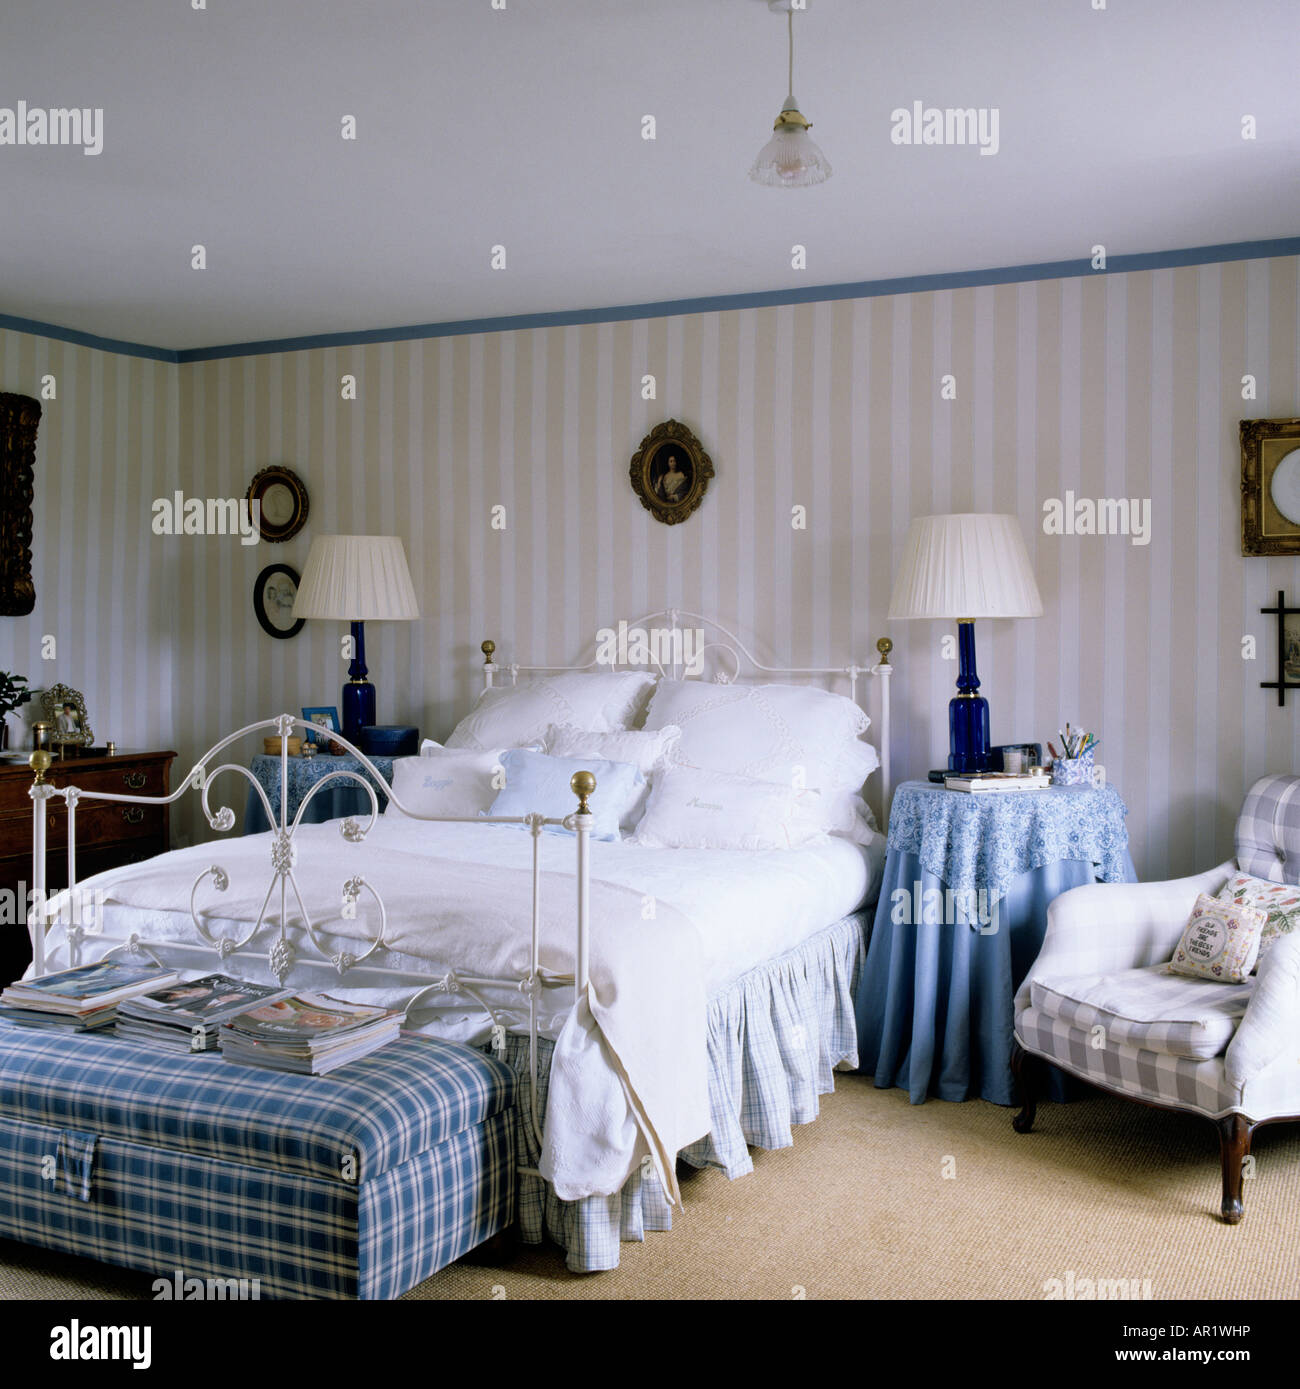 English Country Bedroom With Striped Wallpaper And Victorian